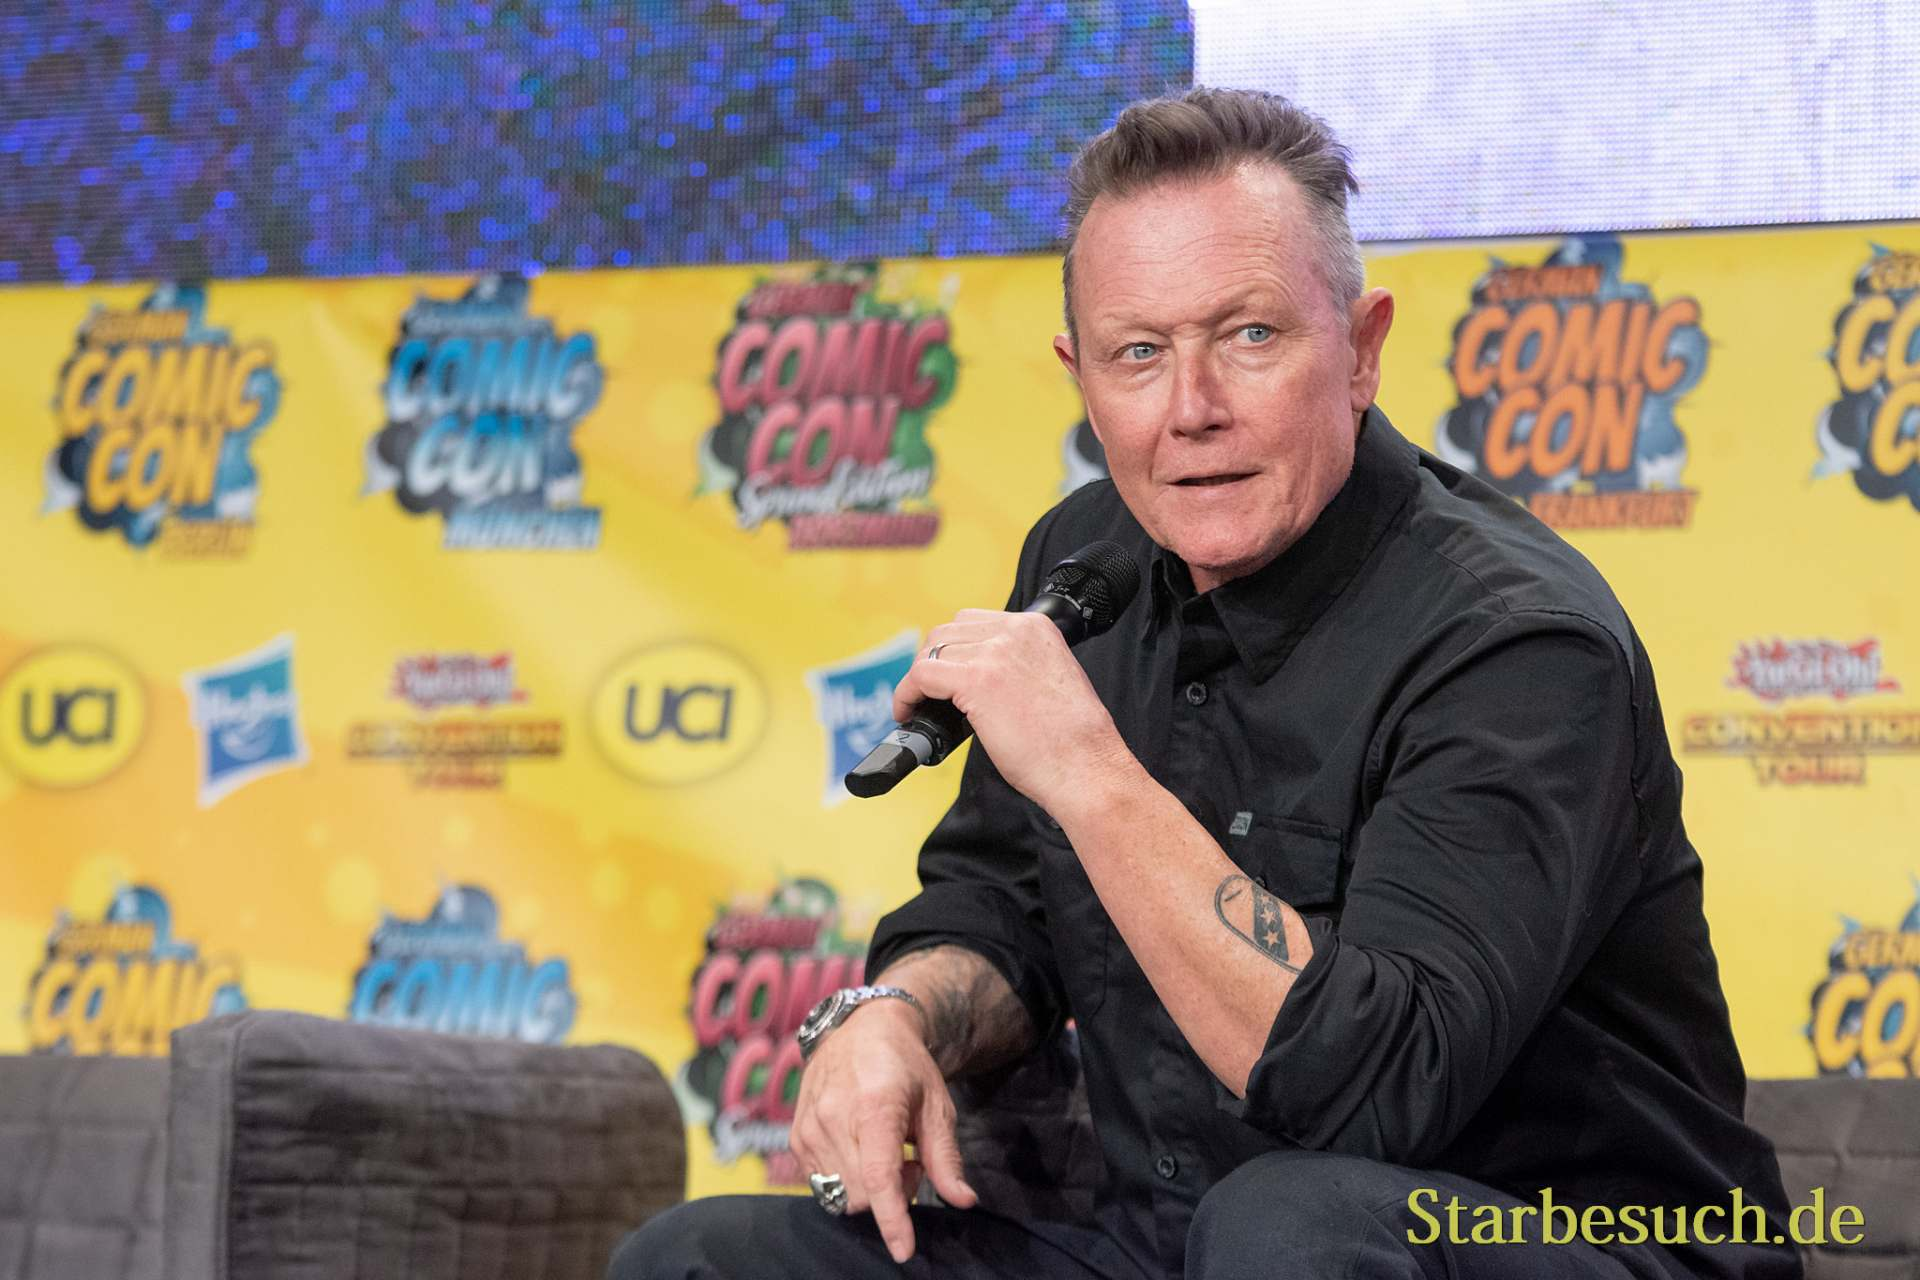 DORTMUND, GERMANY - December 1st 2018: Robert Patrick (*1958, actor, The X-Files, Terminator 2) at German Comic Con Dortmund, a two day fan convention